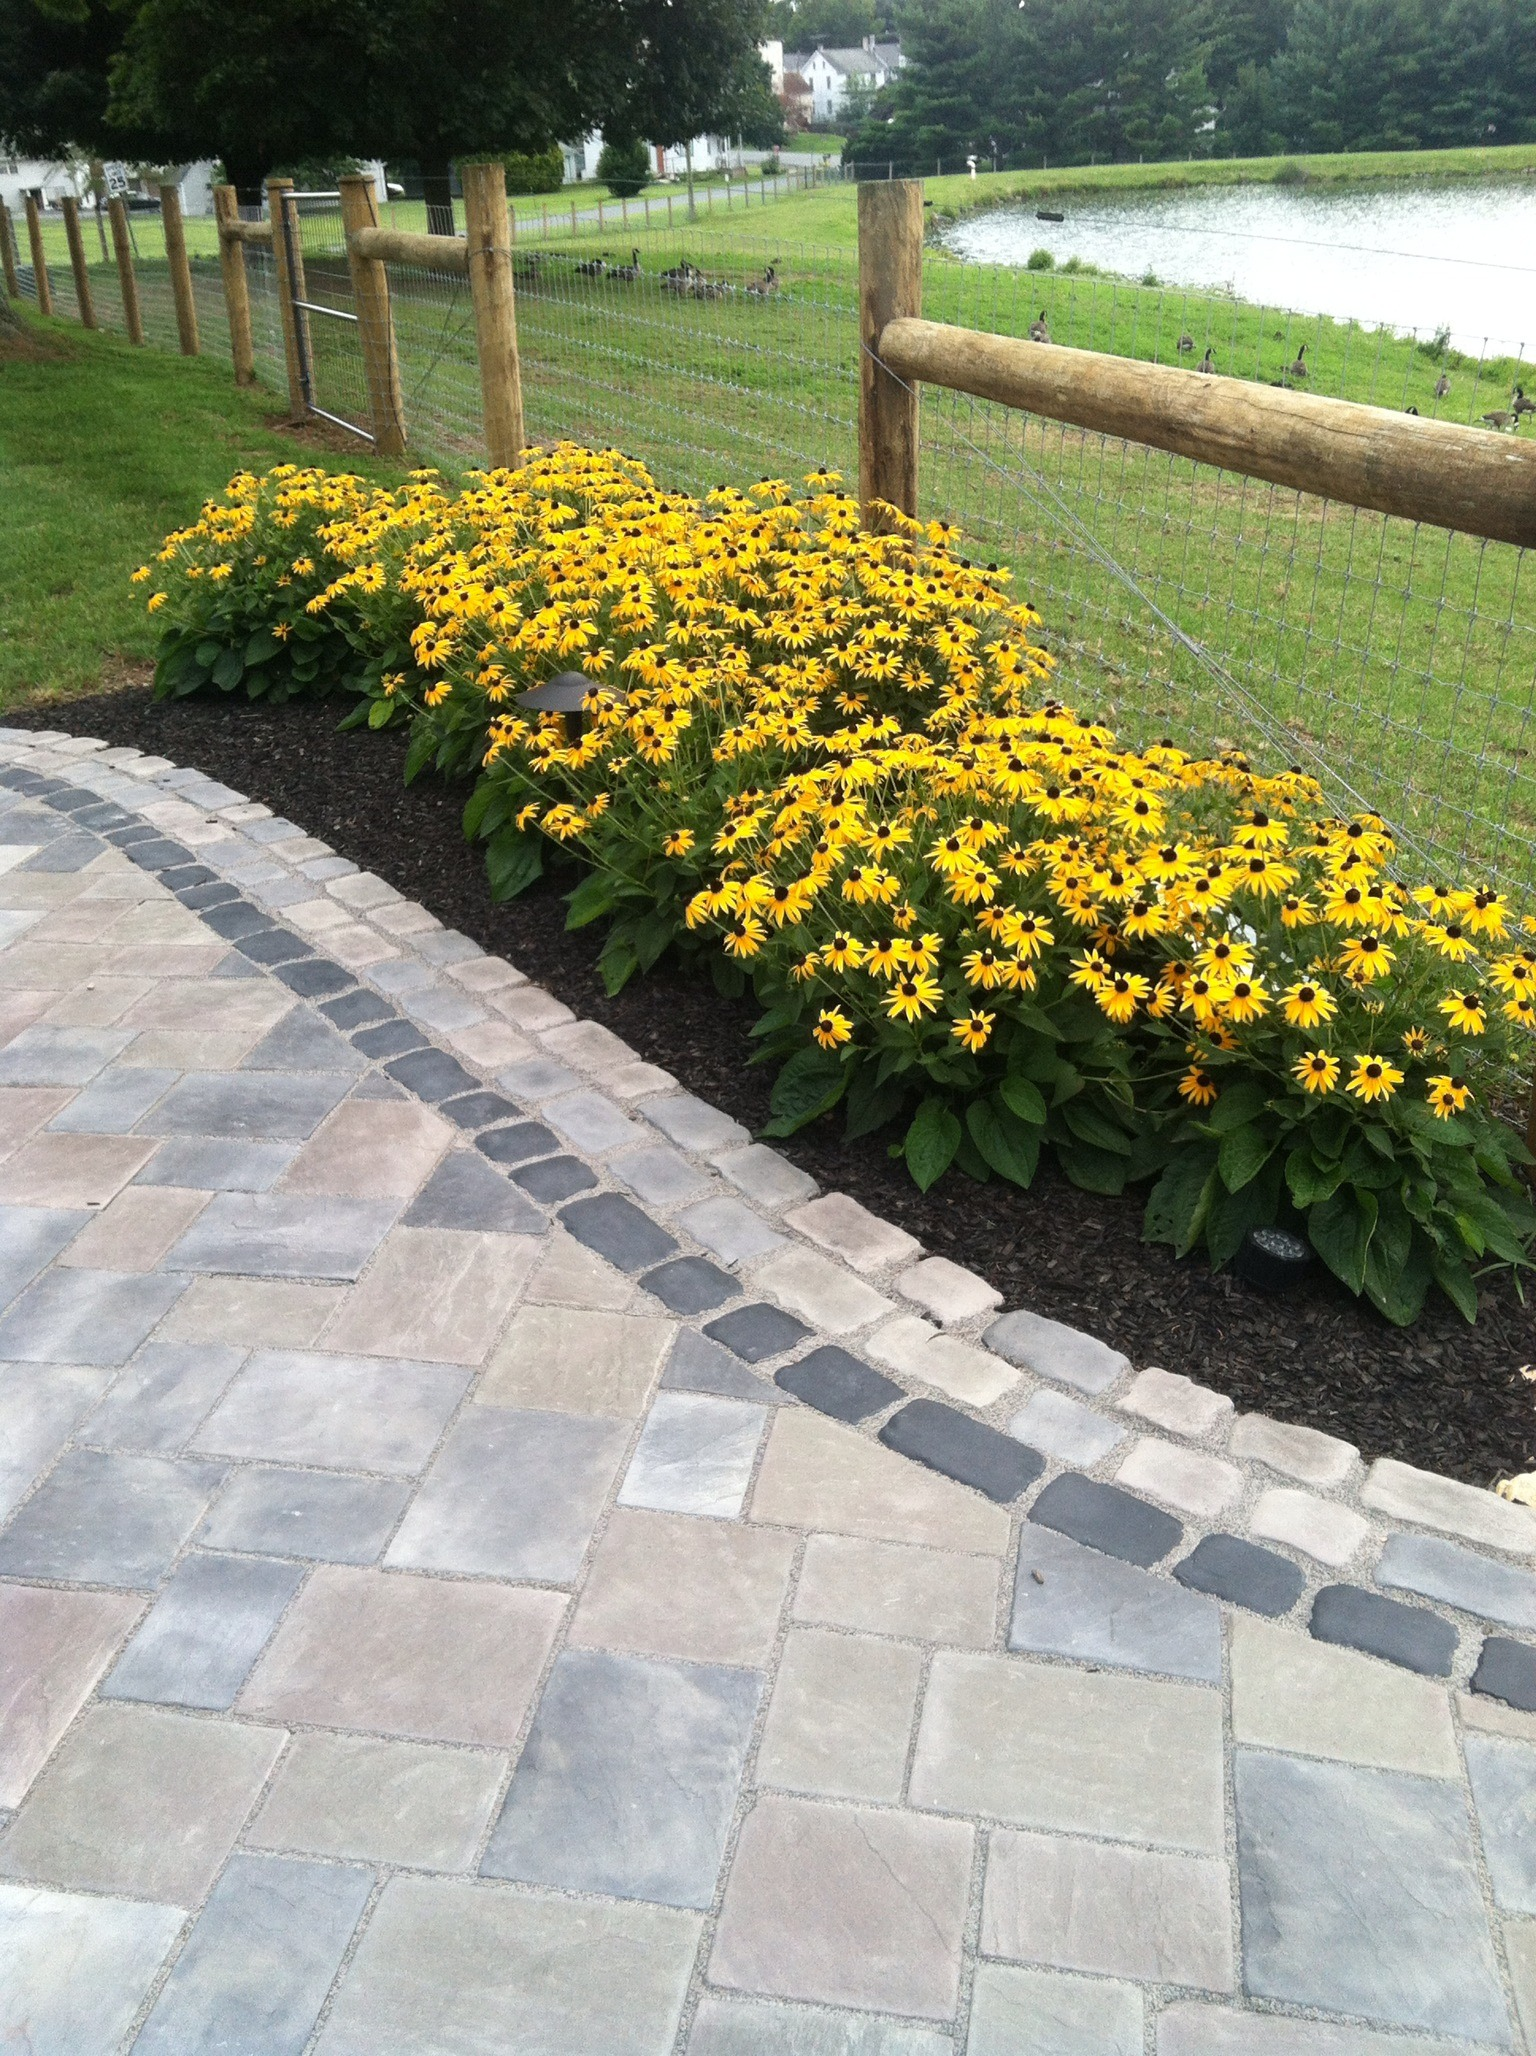 Top landscaping pavers inLehigh county, PA